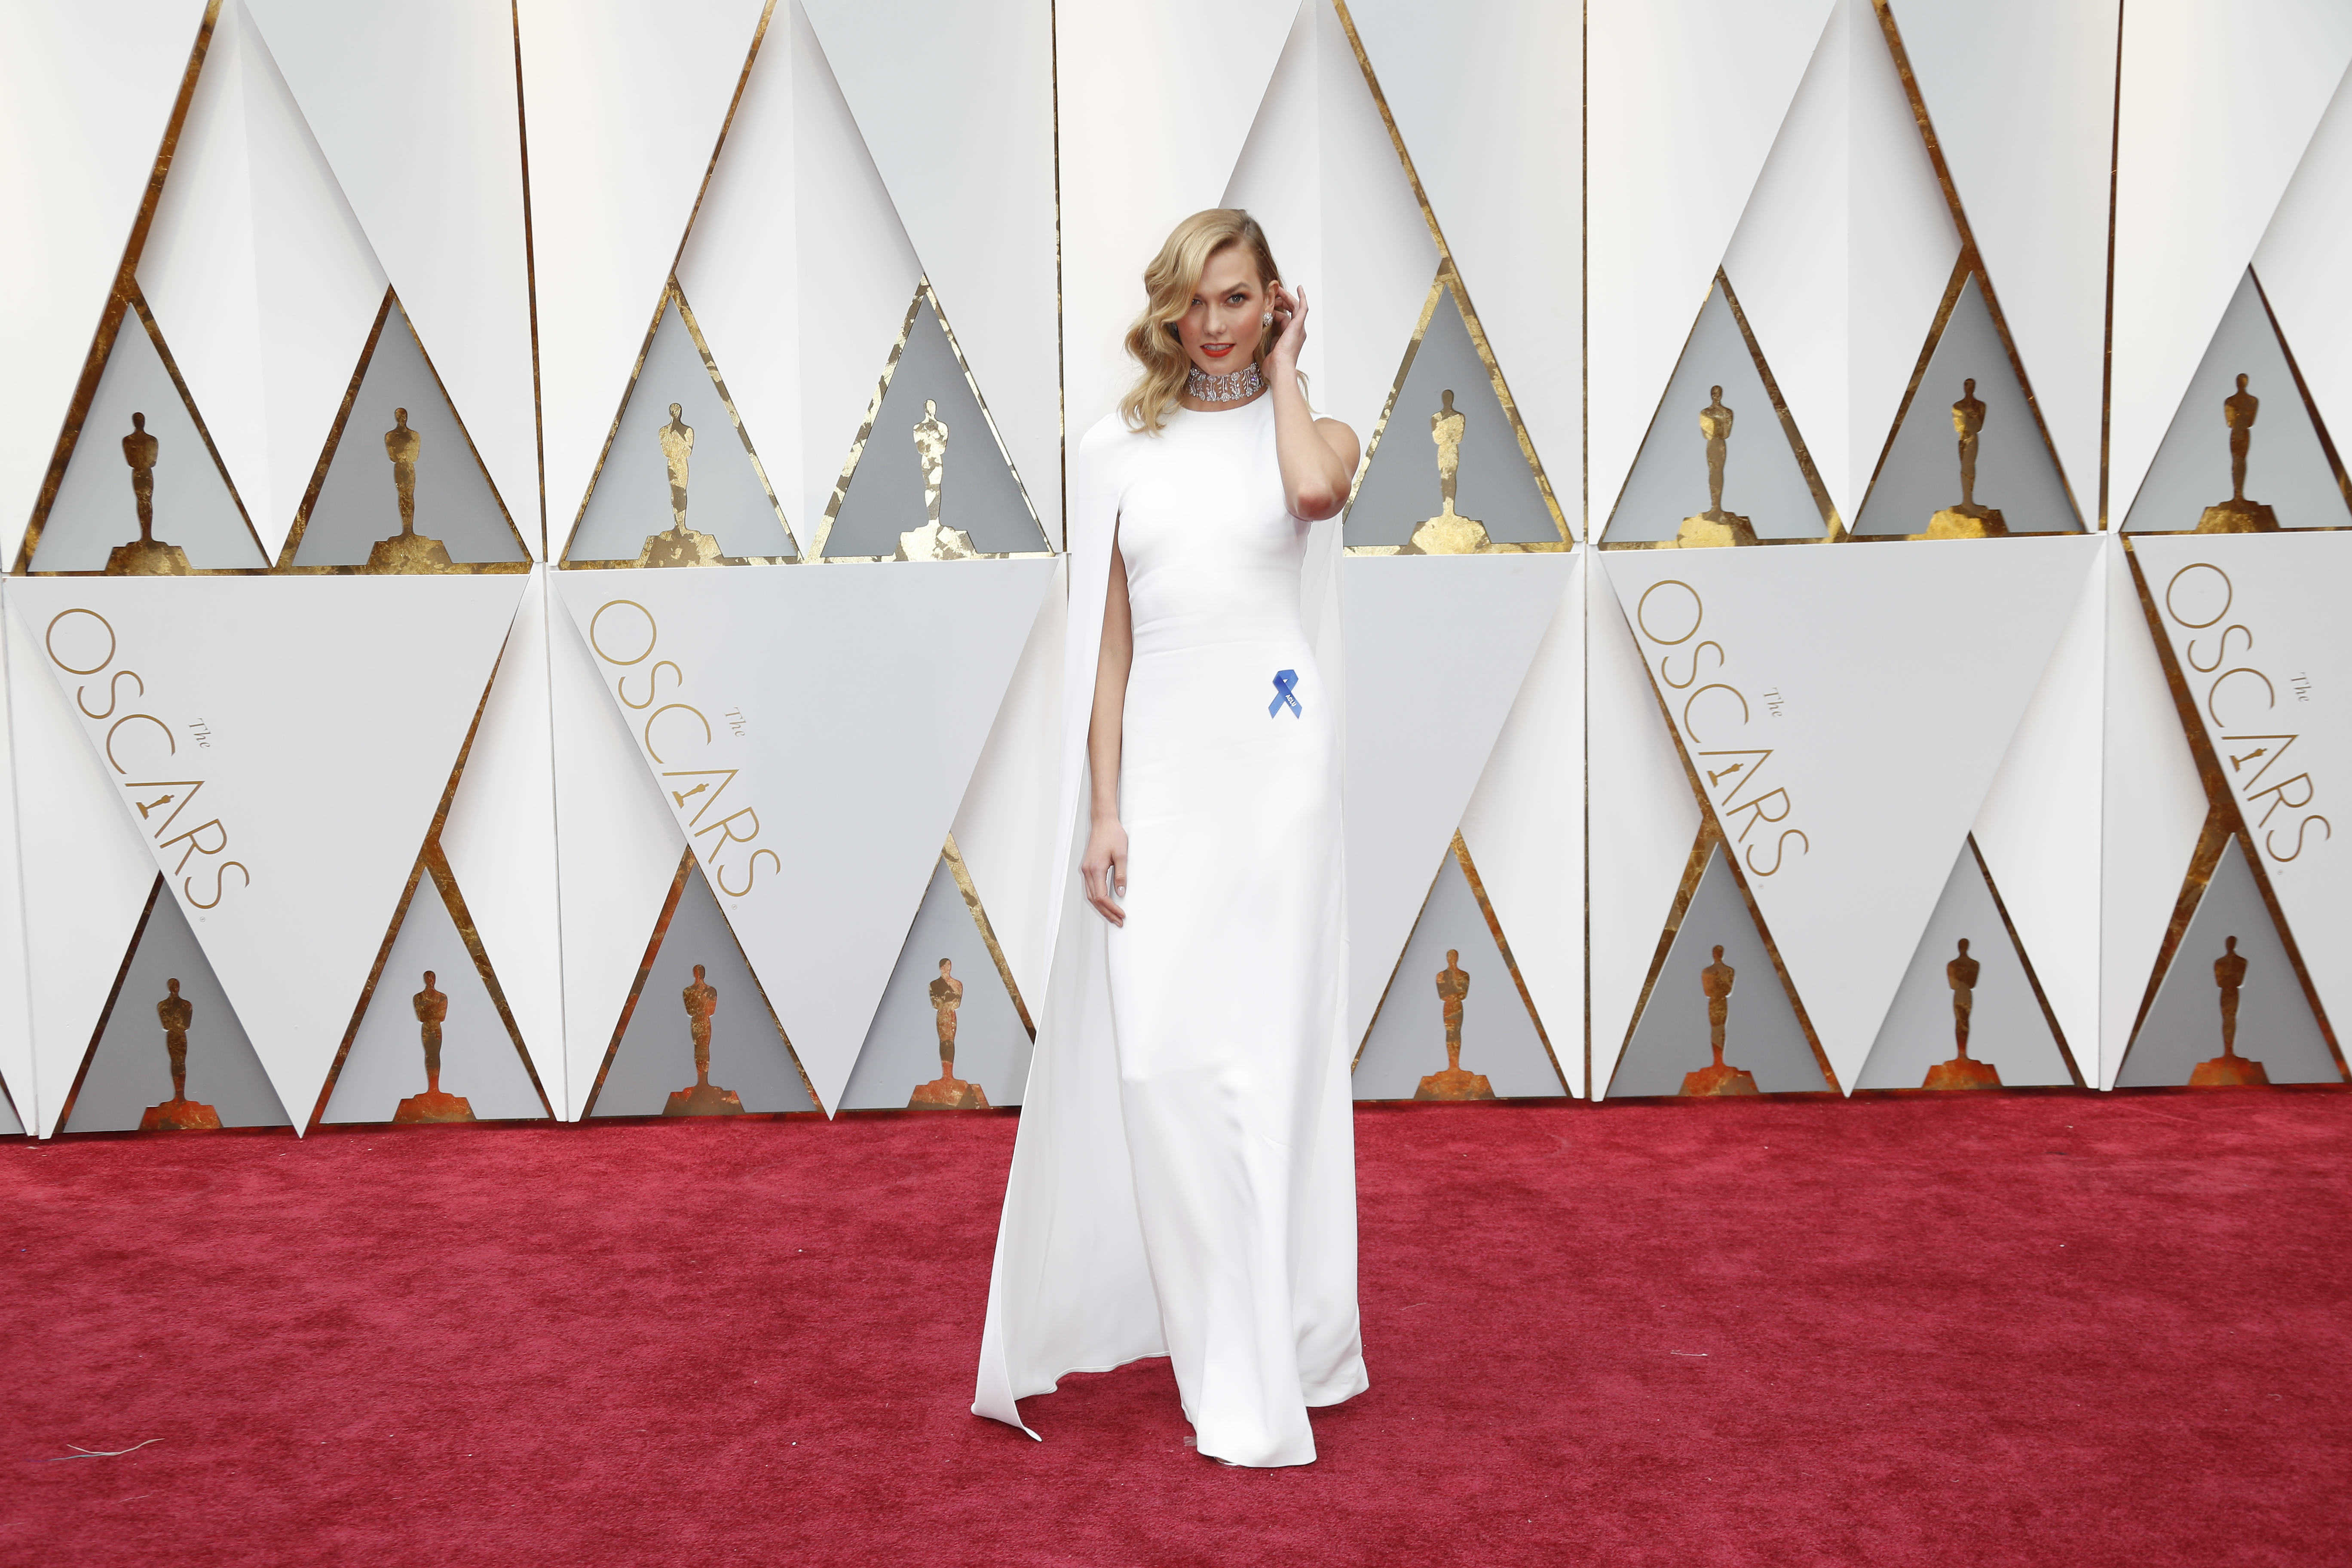 Sensational The Best And Worst Red Carpet Looks At The Academy Awards Bvt News Hairstyles For Women Draintrainus